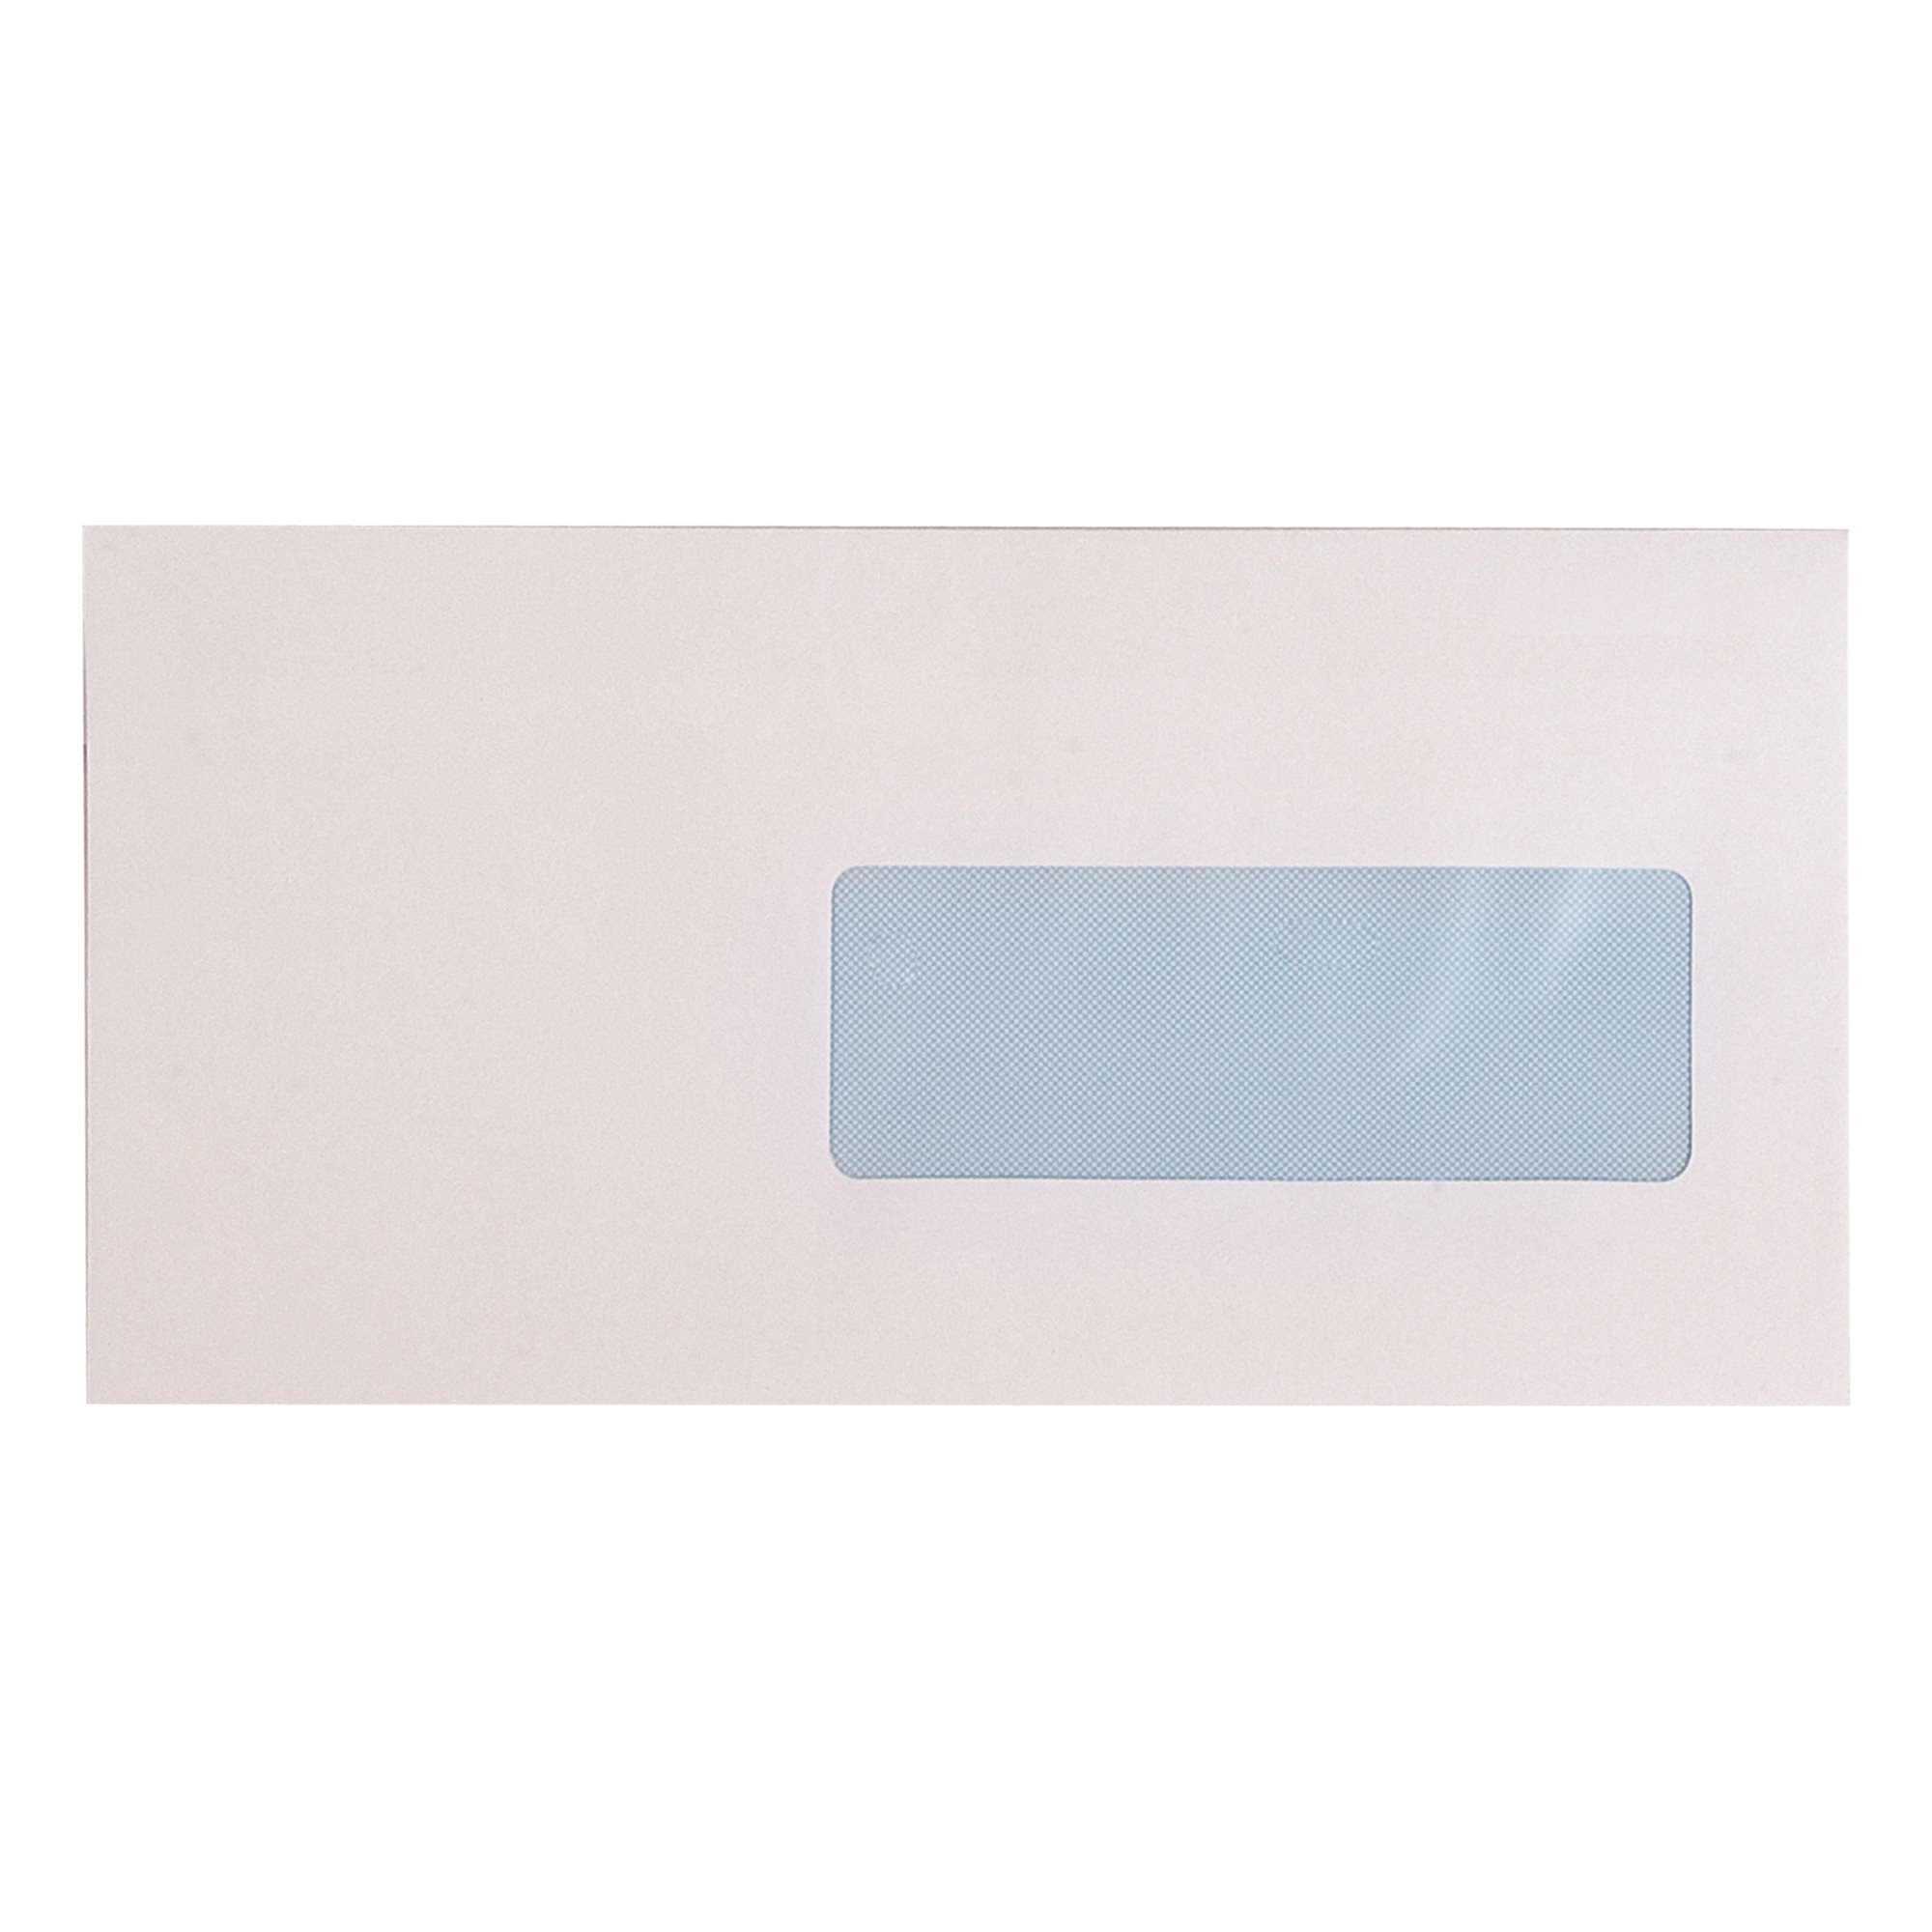 Box of 500 envelopes 114 x 229 mm - self-adhesive - with window 40 x 110 mm